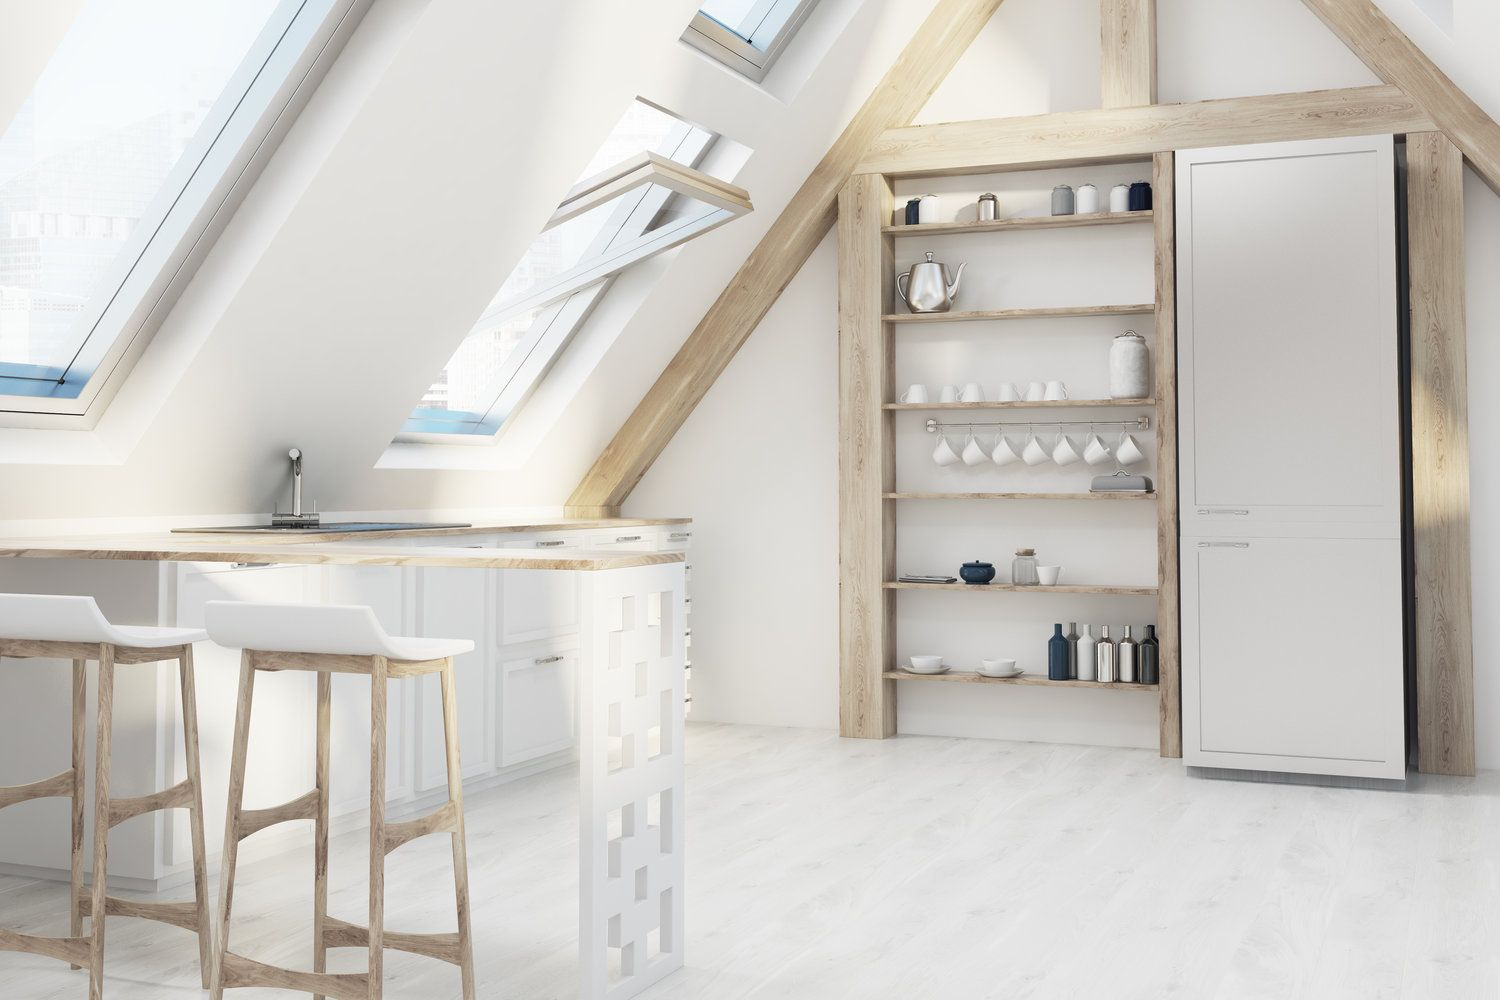 How much does it cost to convert a loft in 2019 in 2020